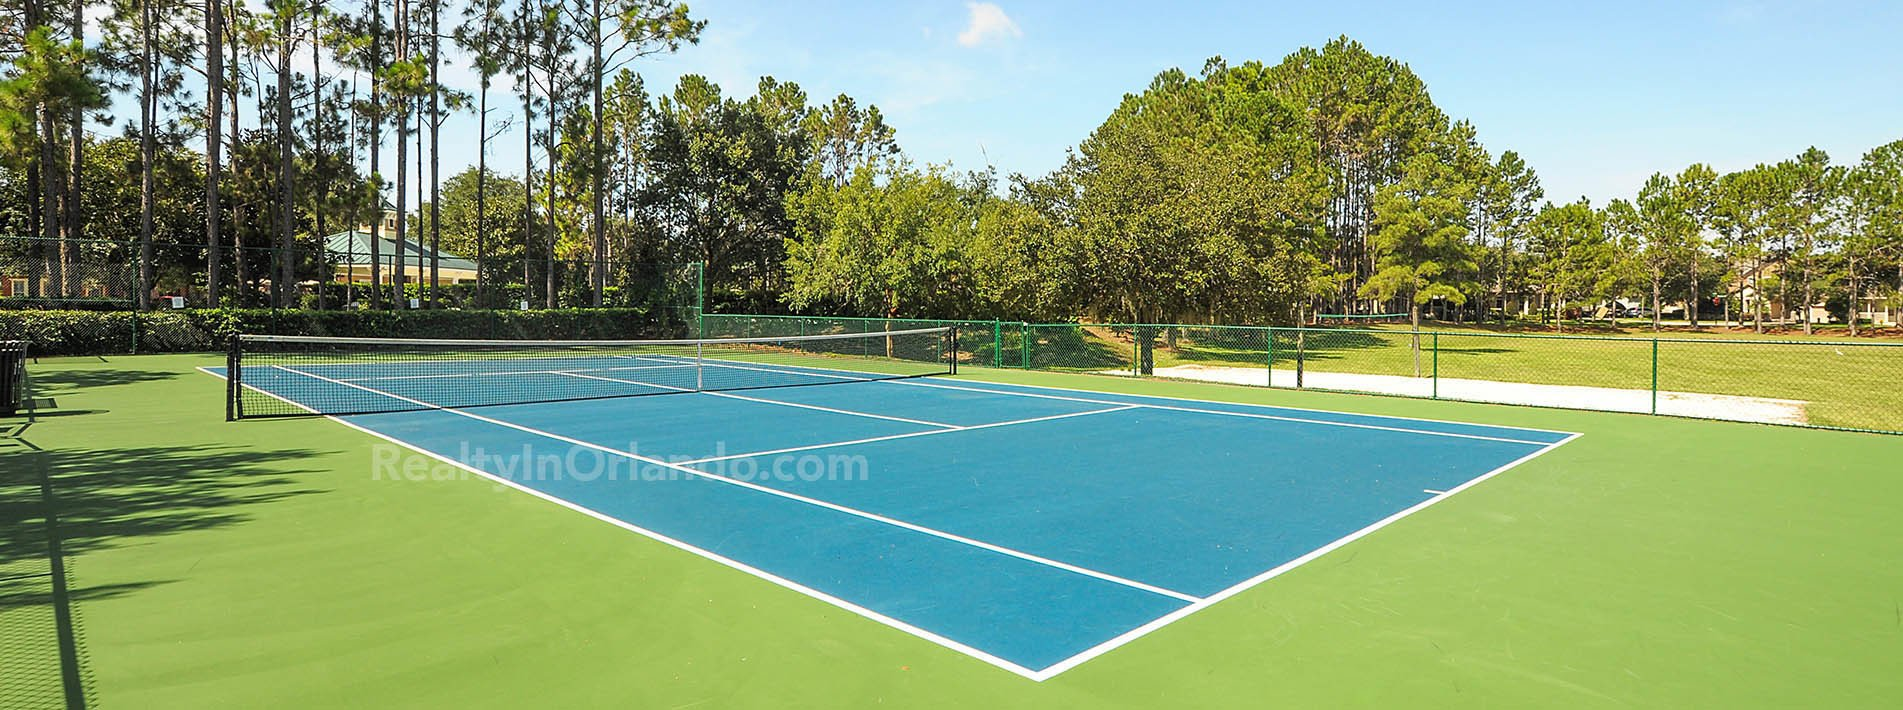 Lakes of Windermere Tennis Courts